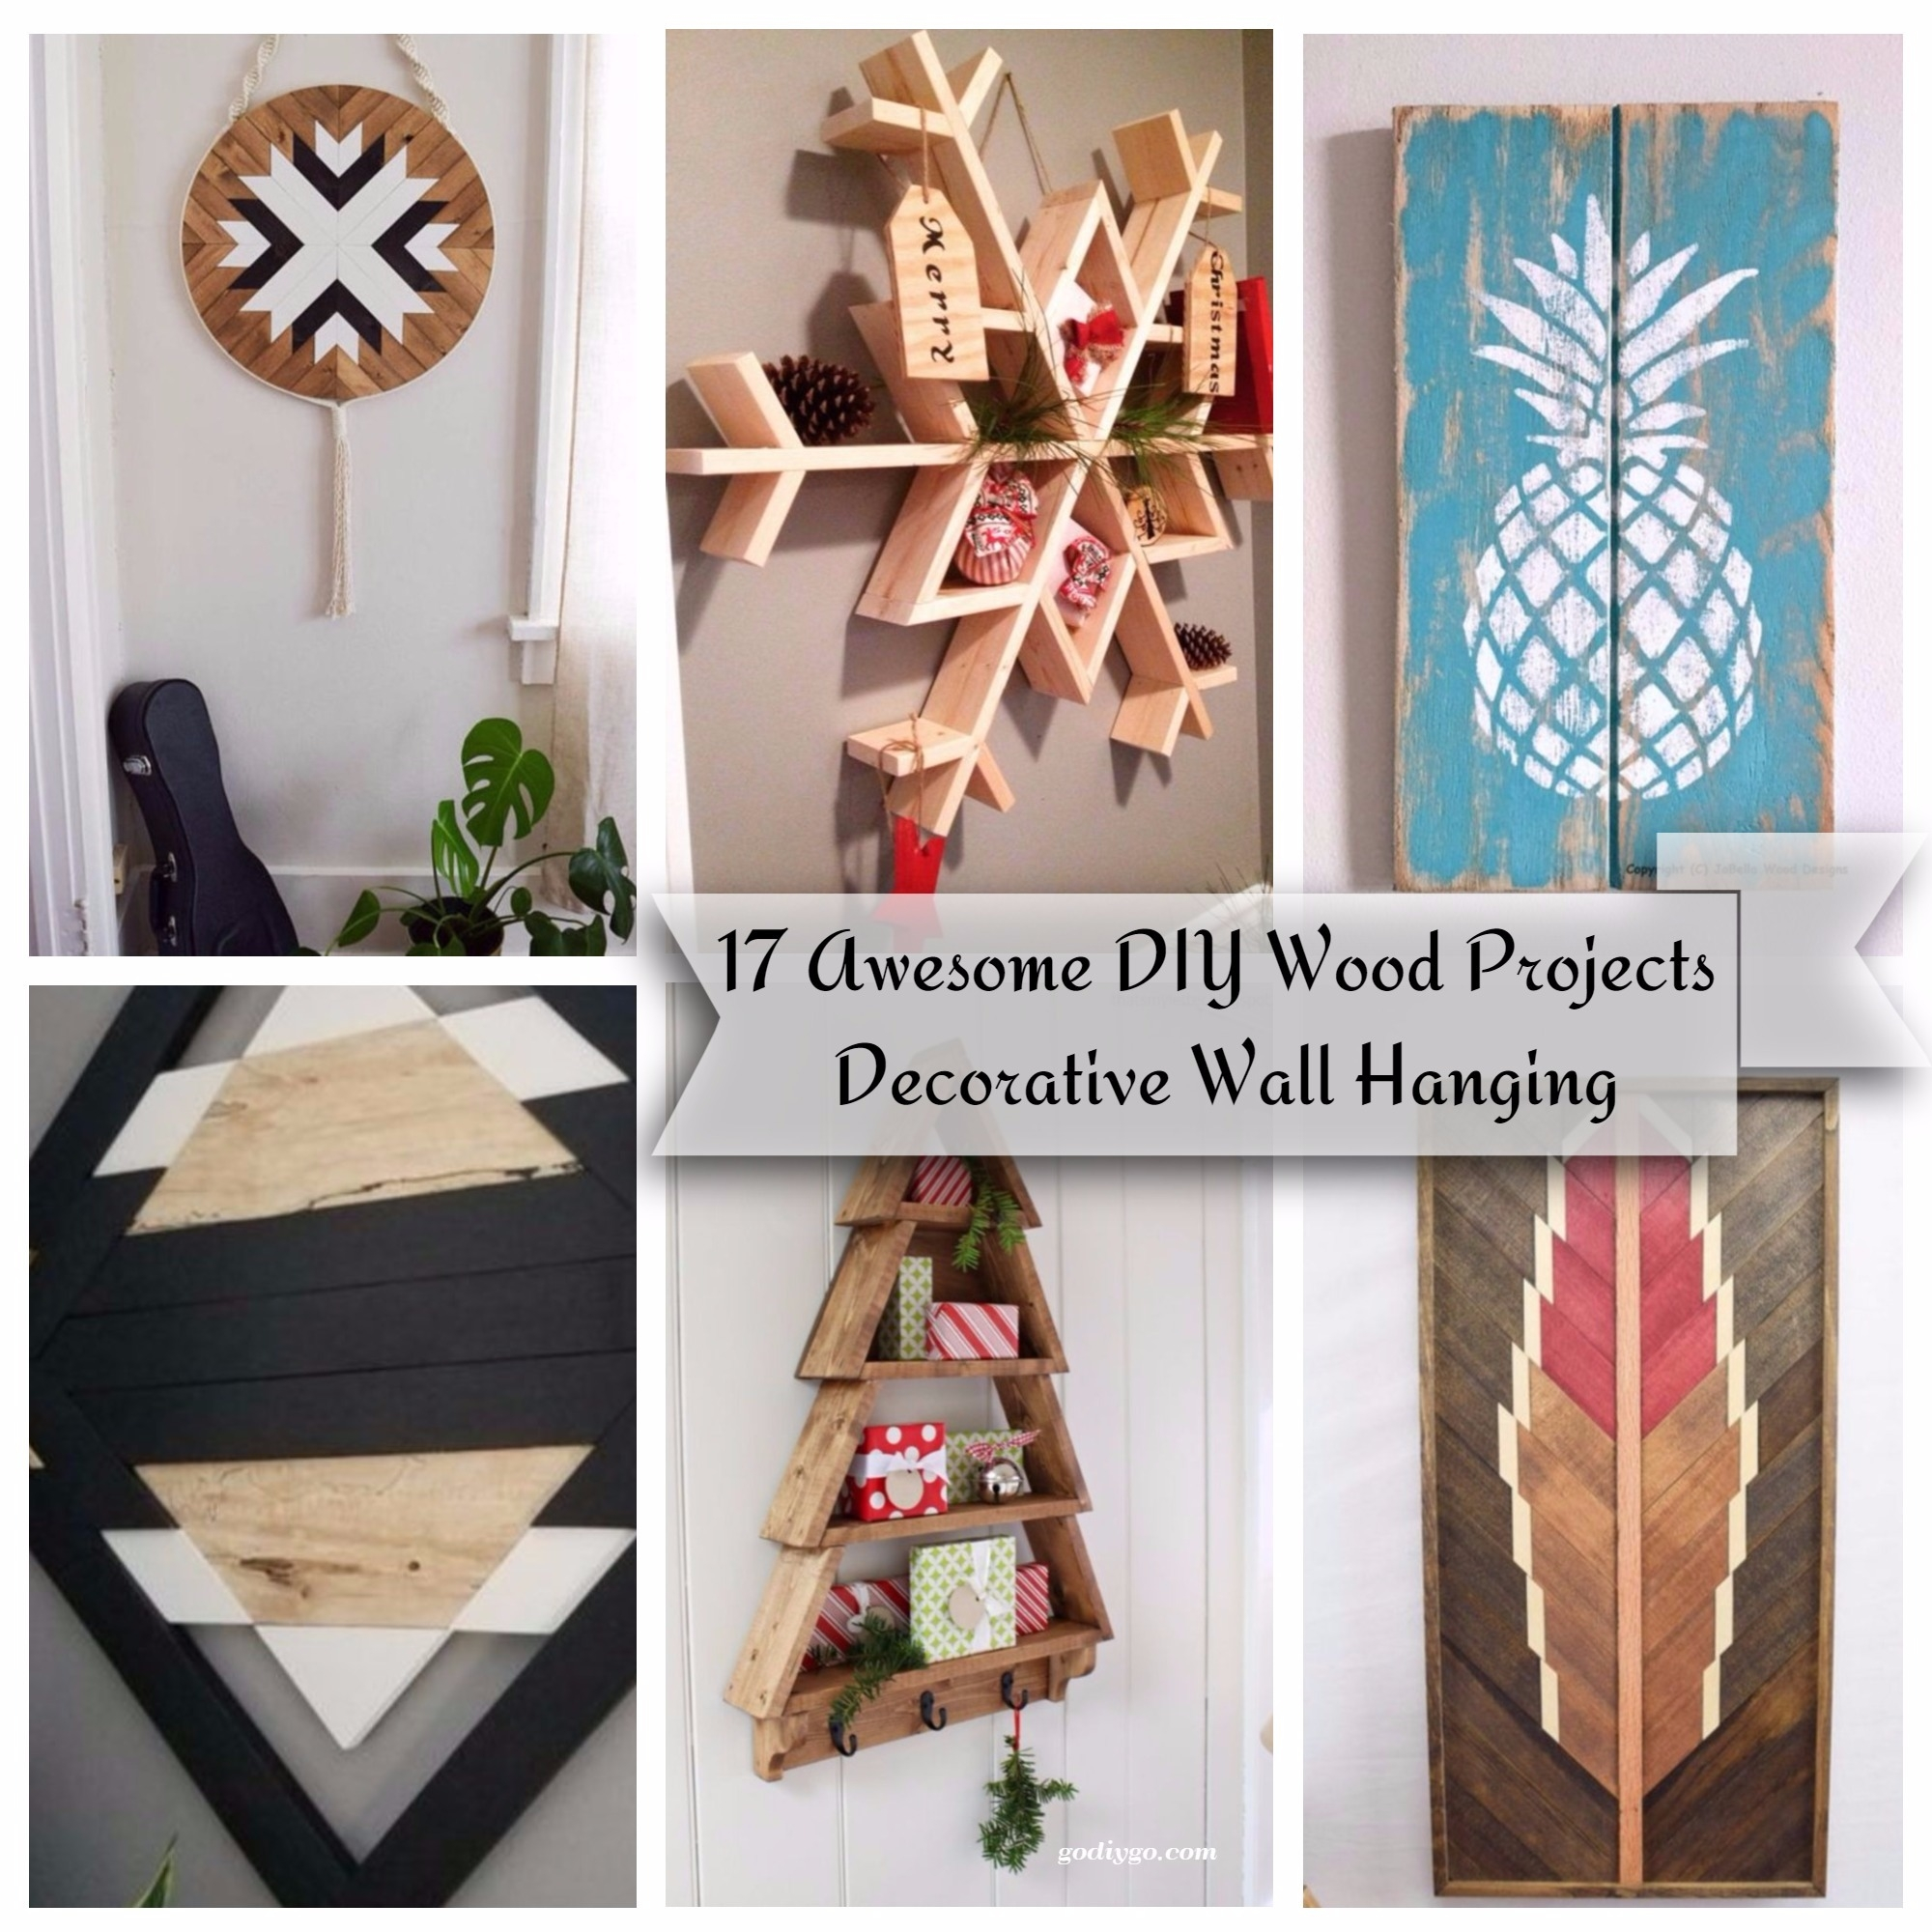 17 Awesome DIY Wood Projects Decorative Wall Hanging